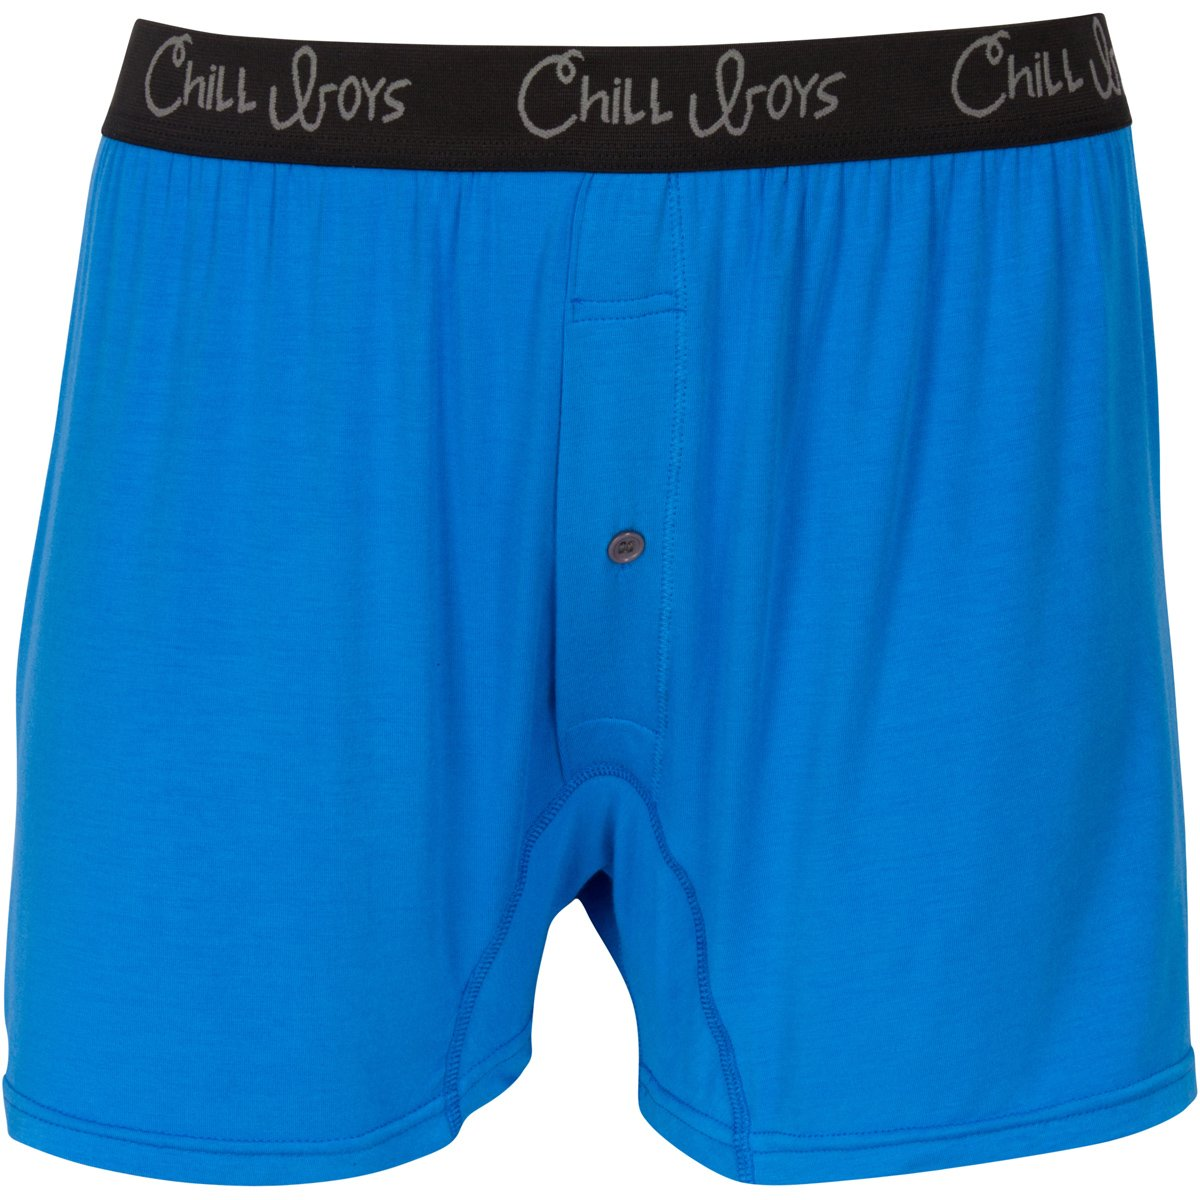 Soft Bamboo Boxers for Men - Cool Comfortable, Breathable Mens Underwear - Boxer Shorts